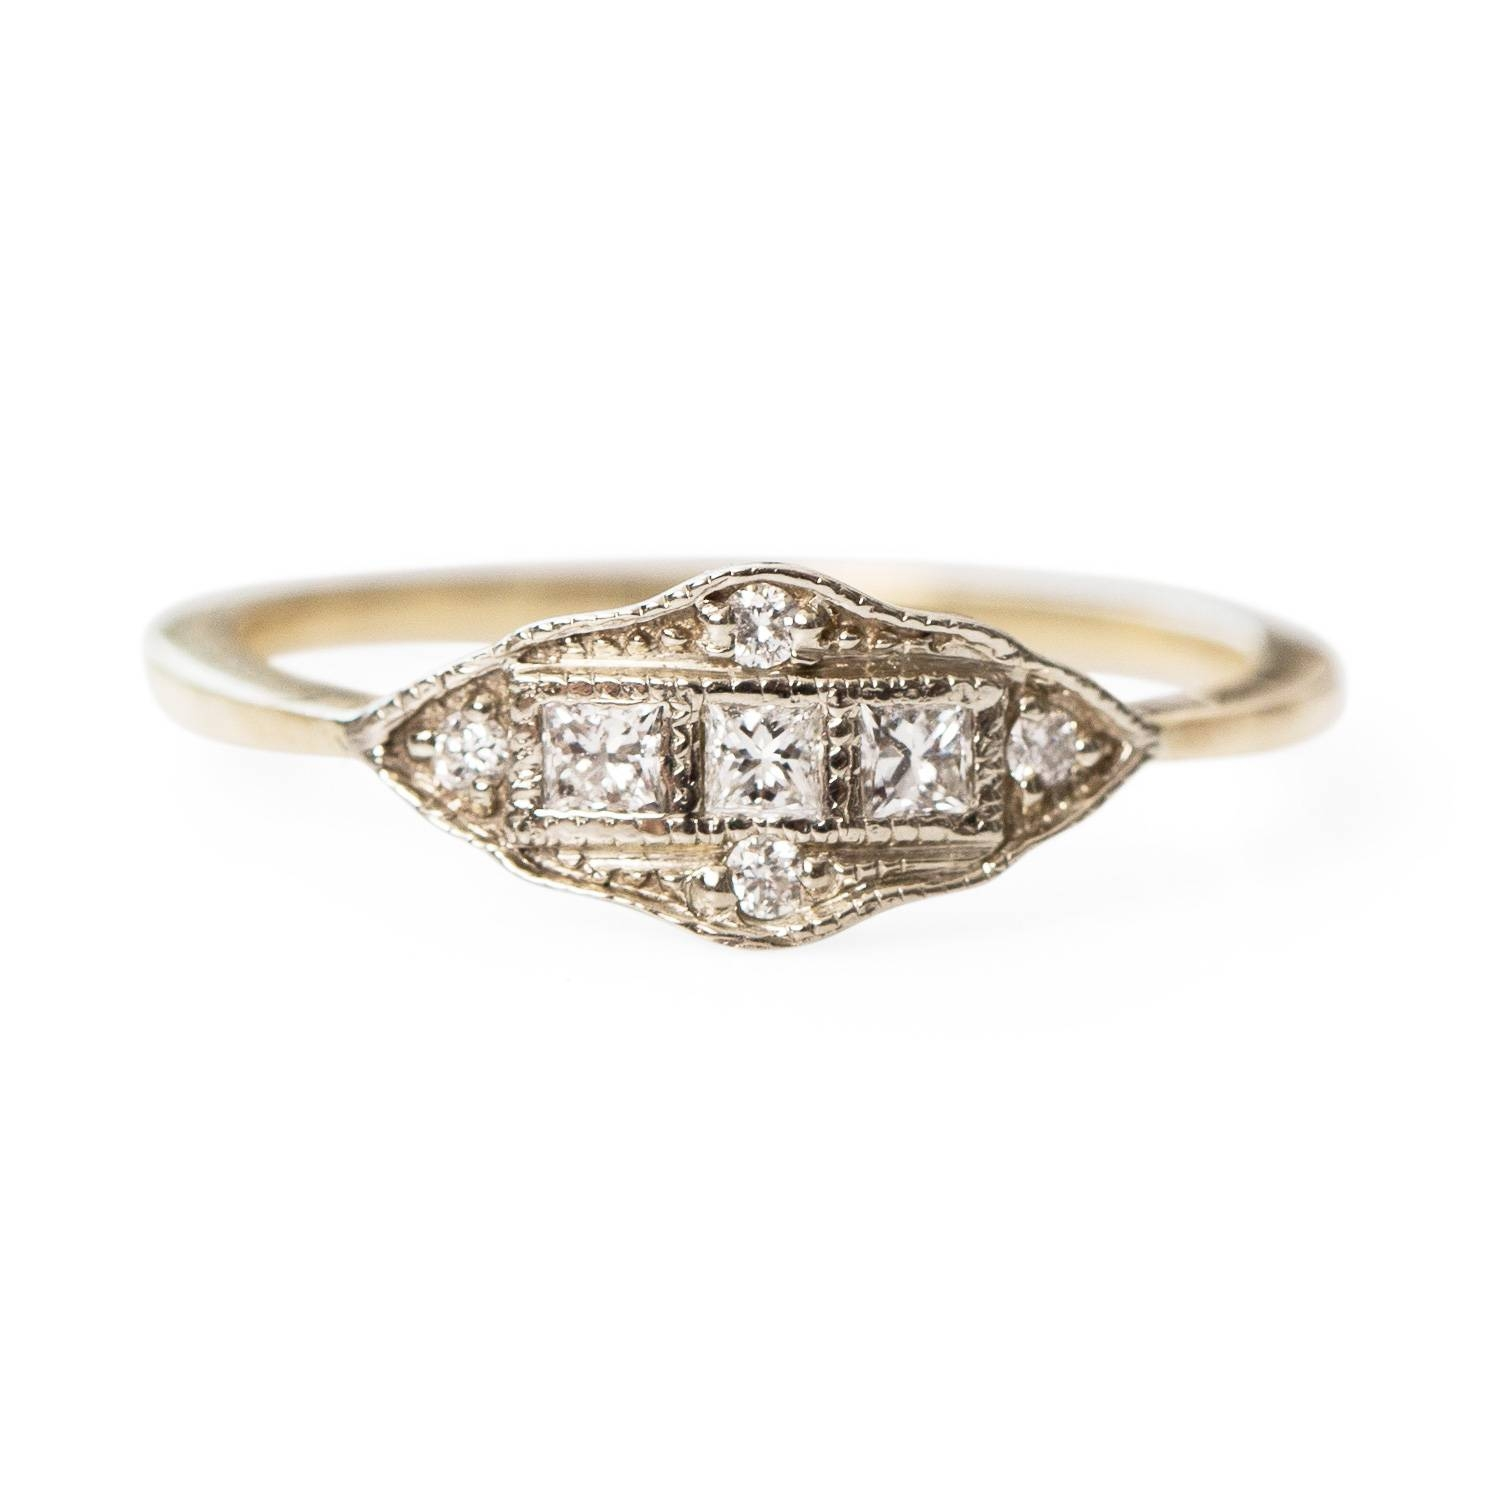 Engagement Rings – Wedding & Engagement – Catbird Within New Age Engagement Rings (View 6 of 15)